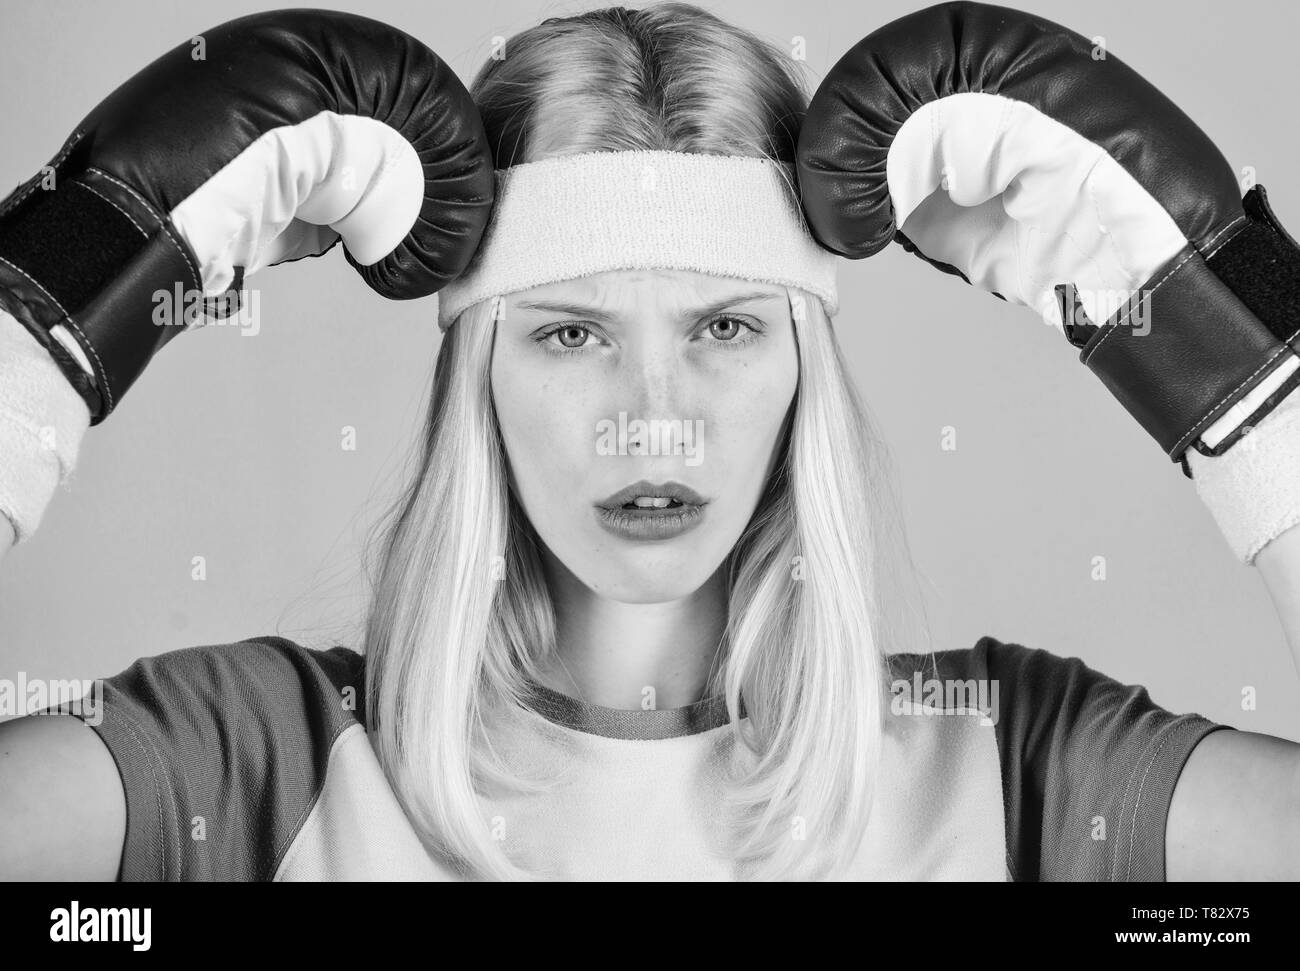 Girl boxing gloves tired to fight. Strong woman suffer pain. Girl painful face embrace head with boxing gloves. Headache remedies. Headache concept. Keep calm and get rid of headache. Beat headache. - Stock Image